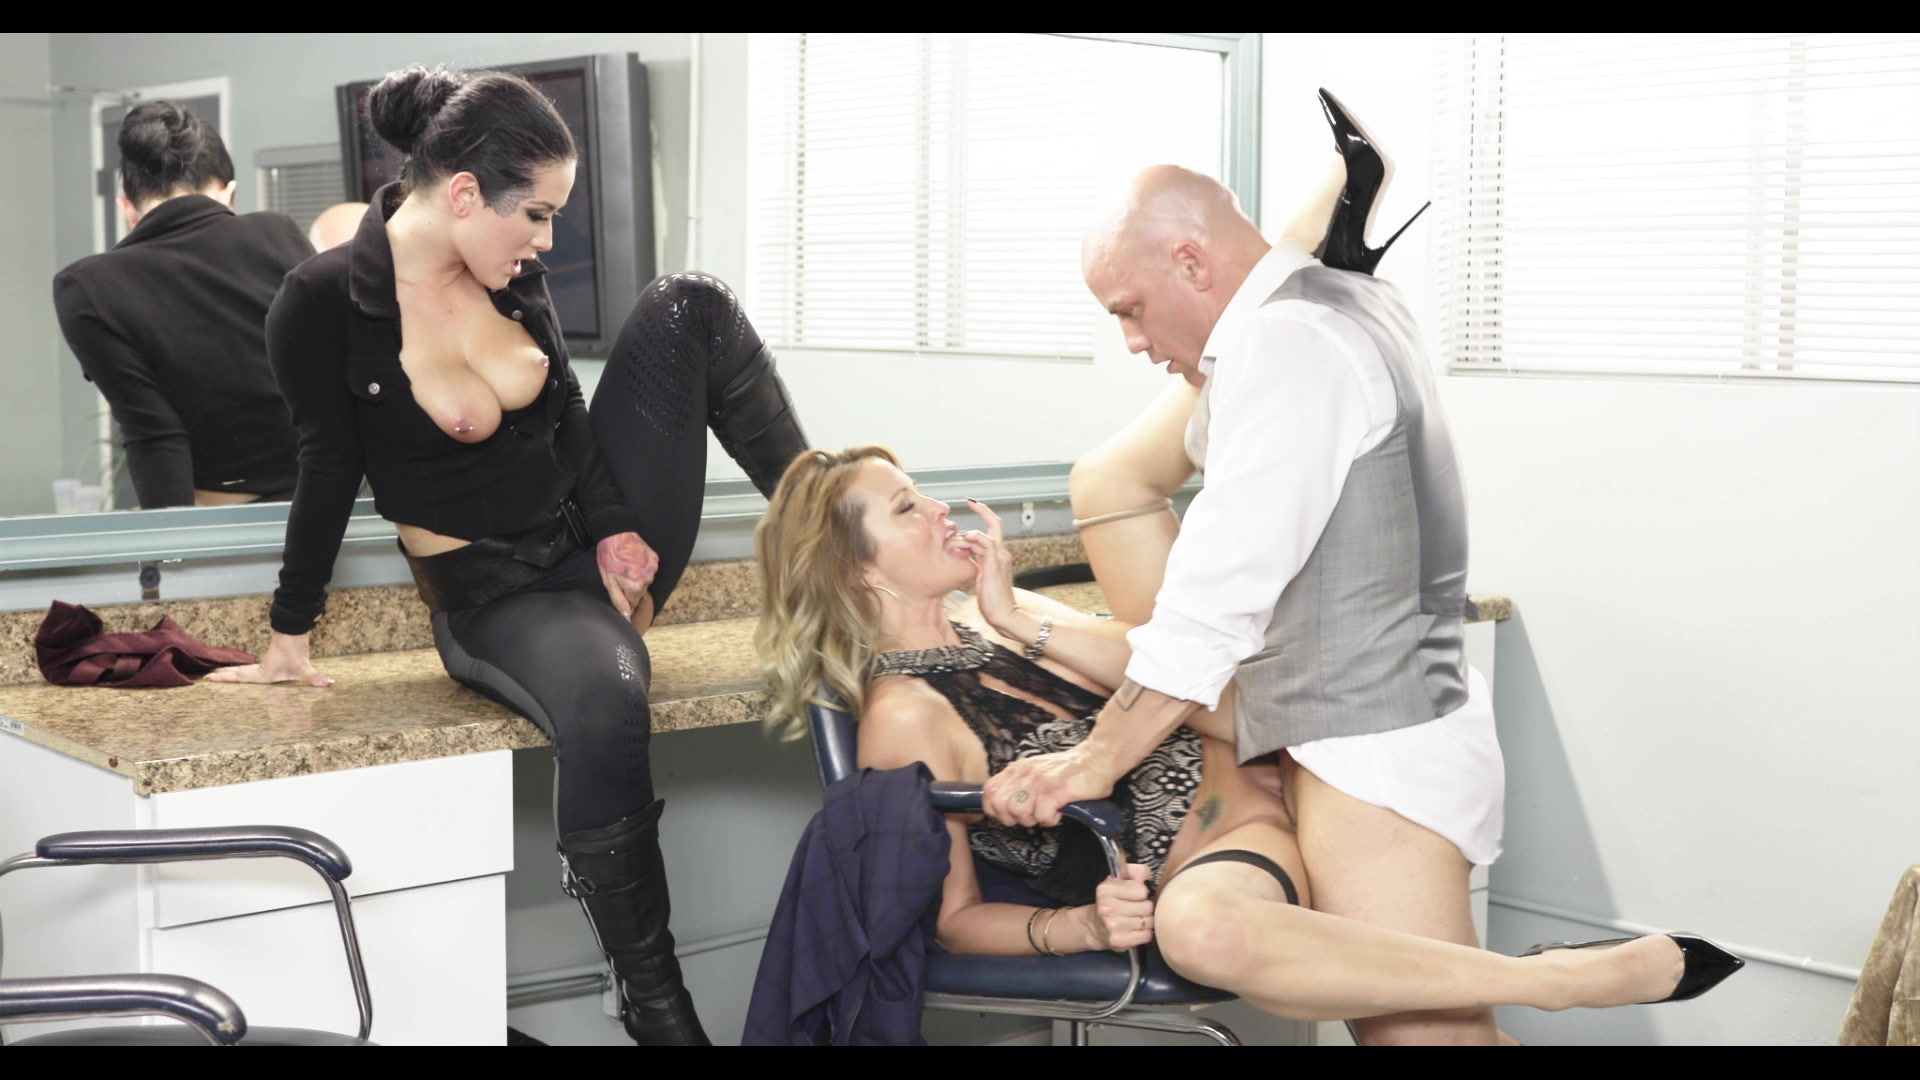 Scene with Jessica Drake, Derrick Pierce and Katrina Jade - image 19 out of 20